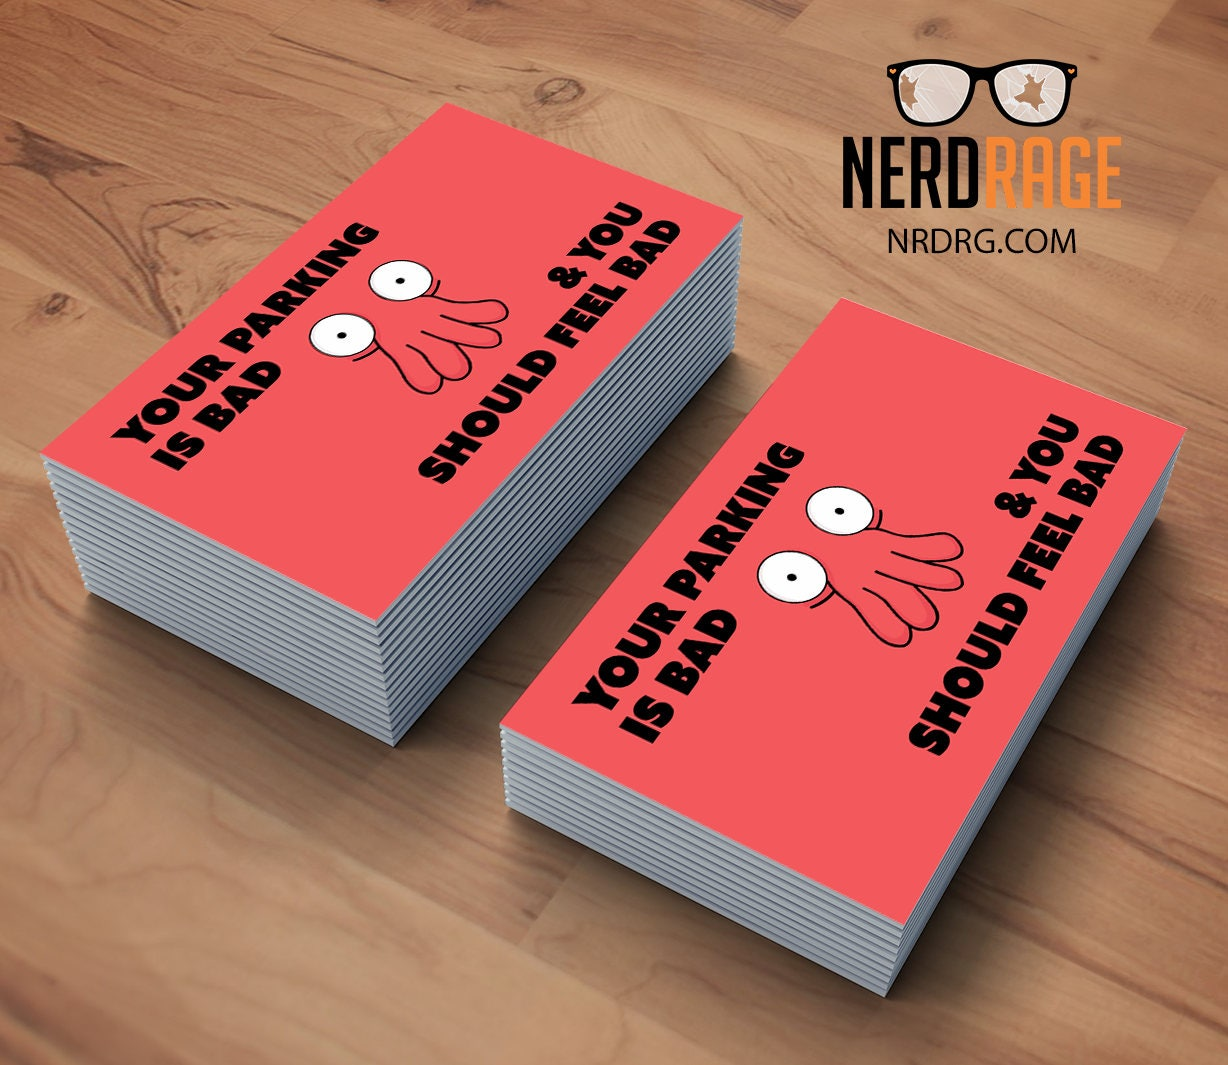 Zoidberg bad parking cards stack of 50 funny parking card zoidberg bad parking cards stack of 50 funny parking card novelty business card colourmoves